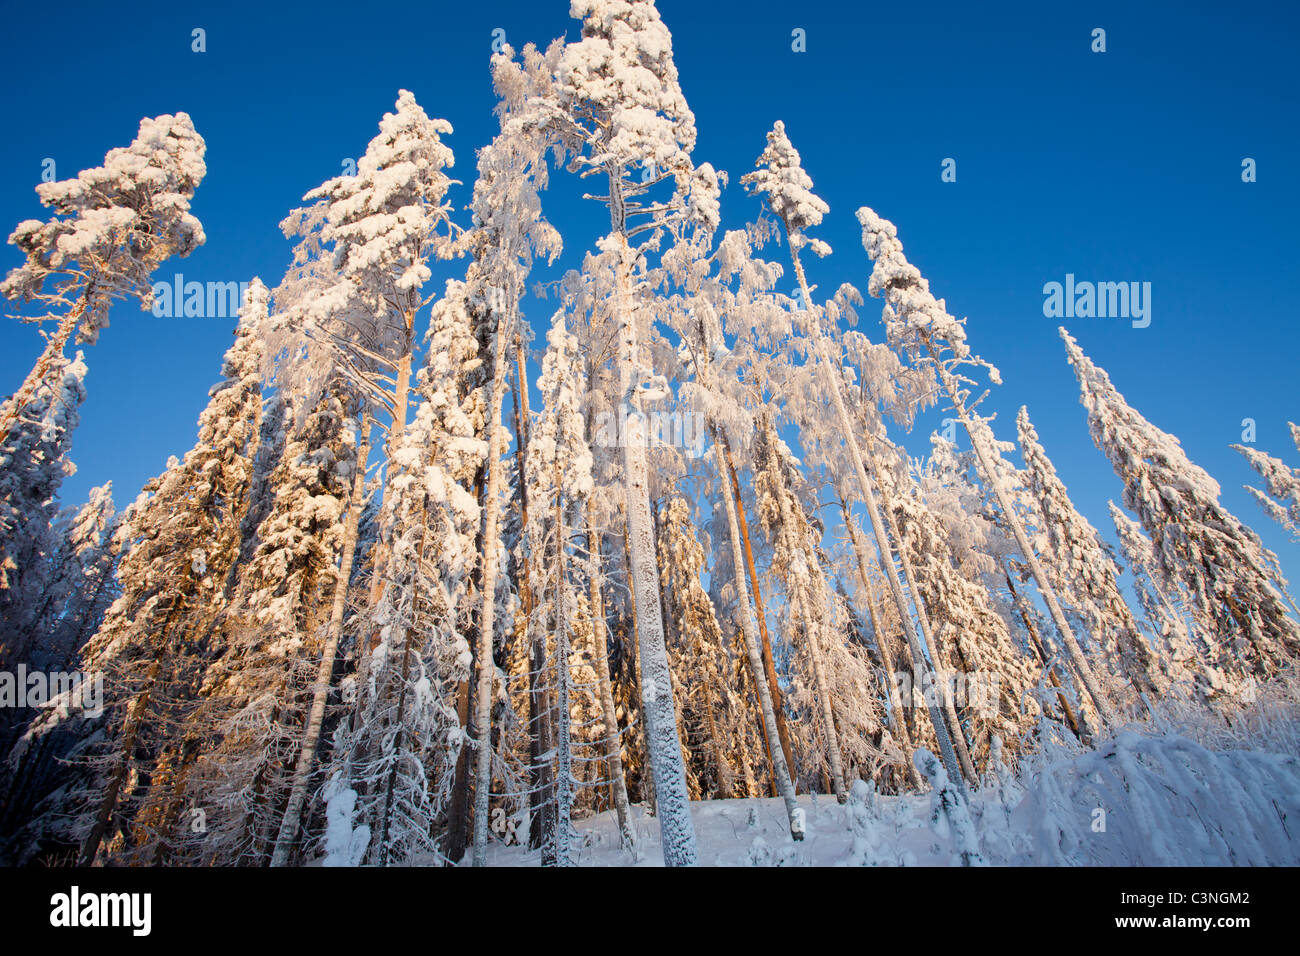 Snow covered pine ( pinus sylvestris ) treetops at winter , Finland - Stock Image